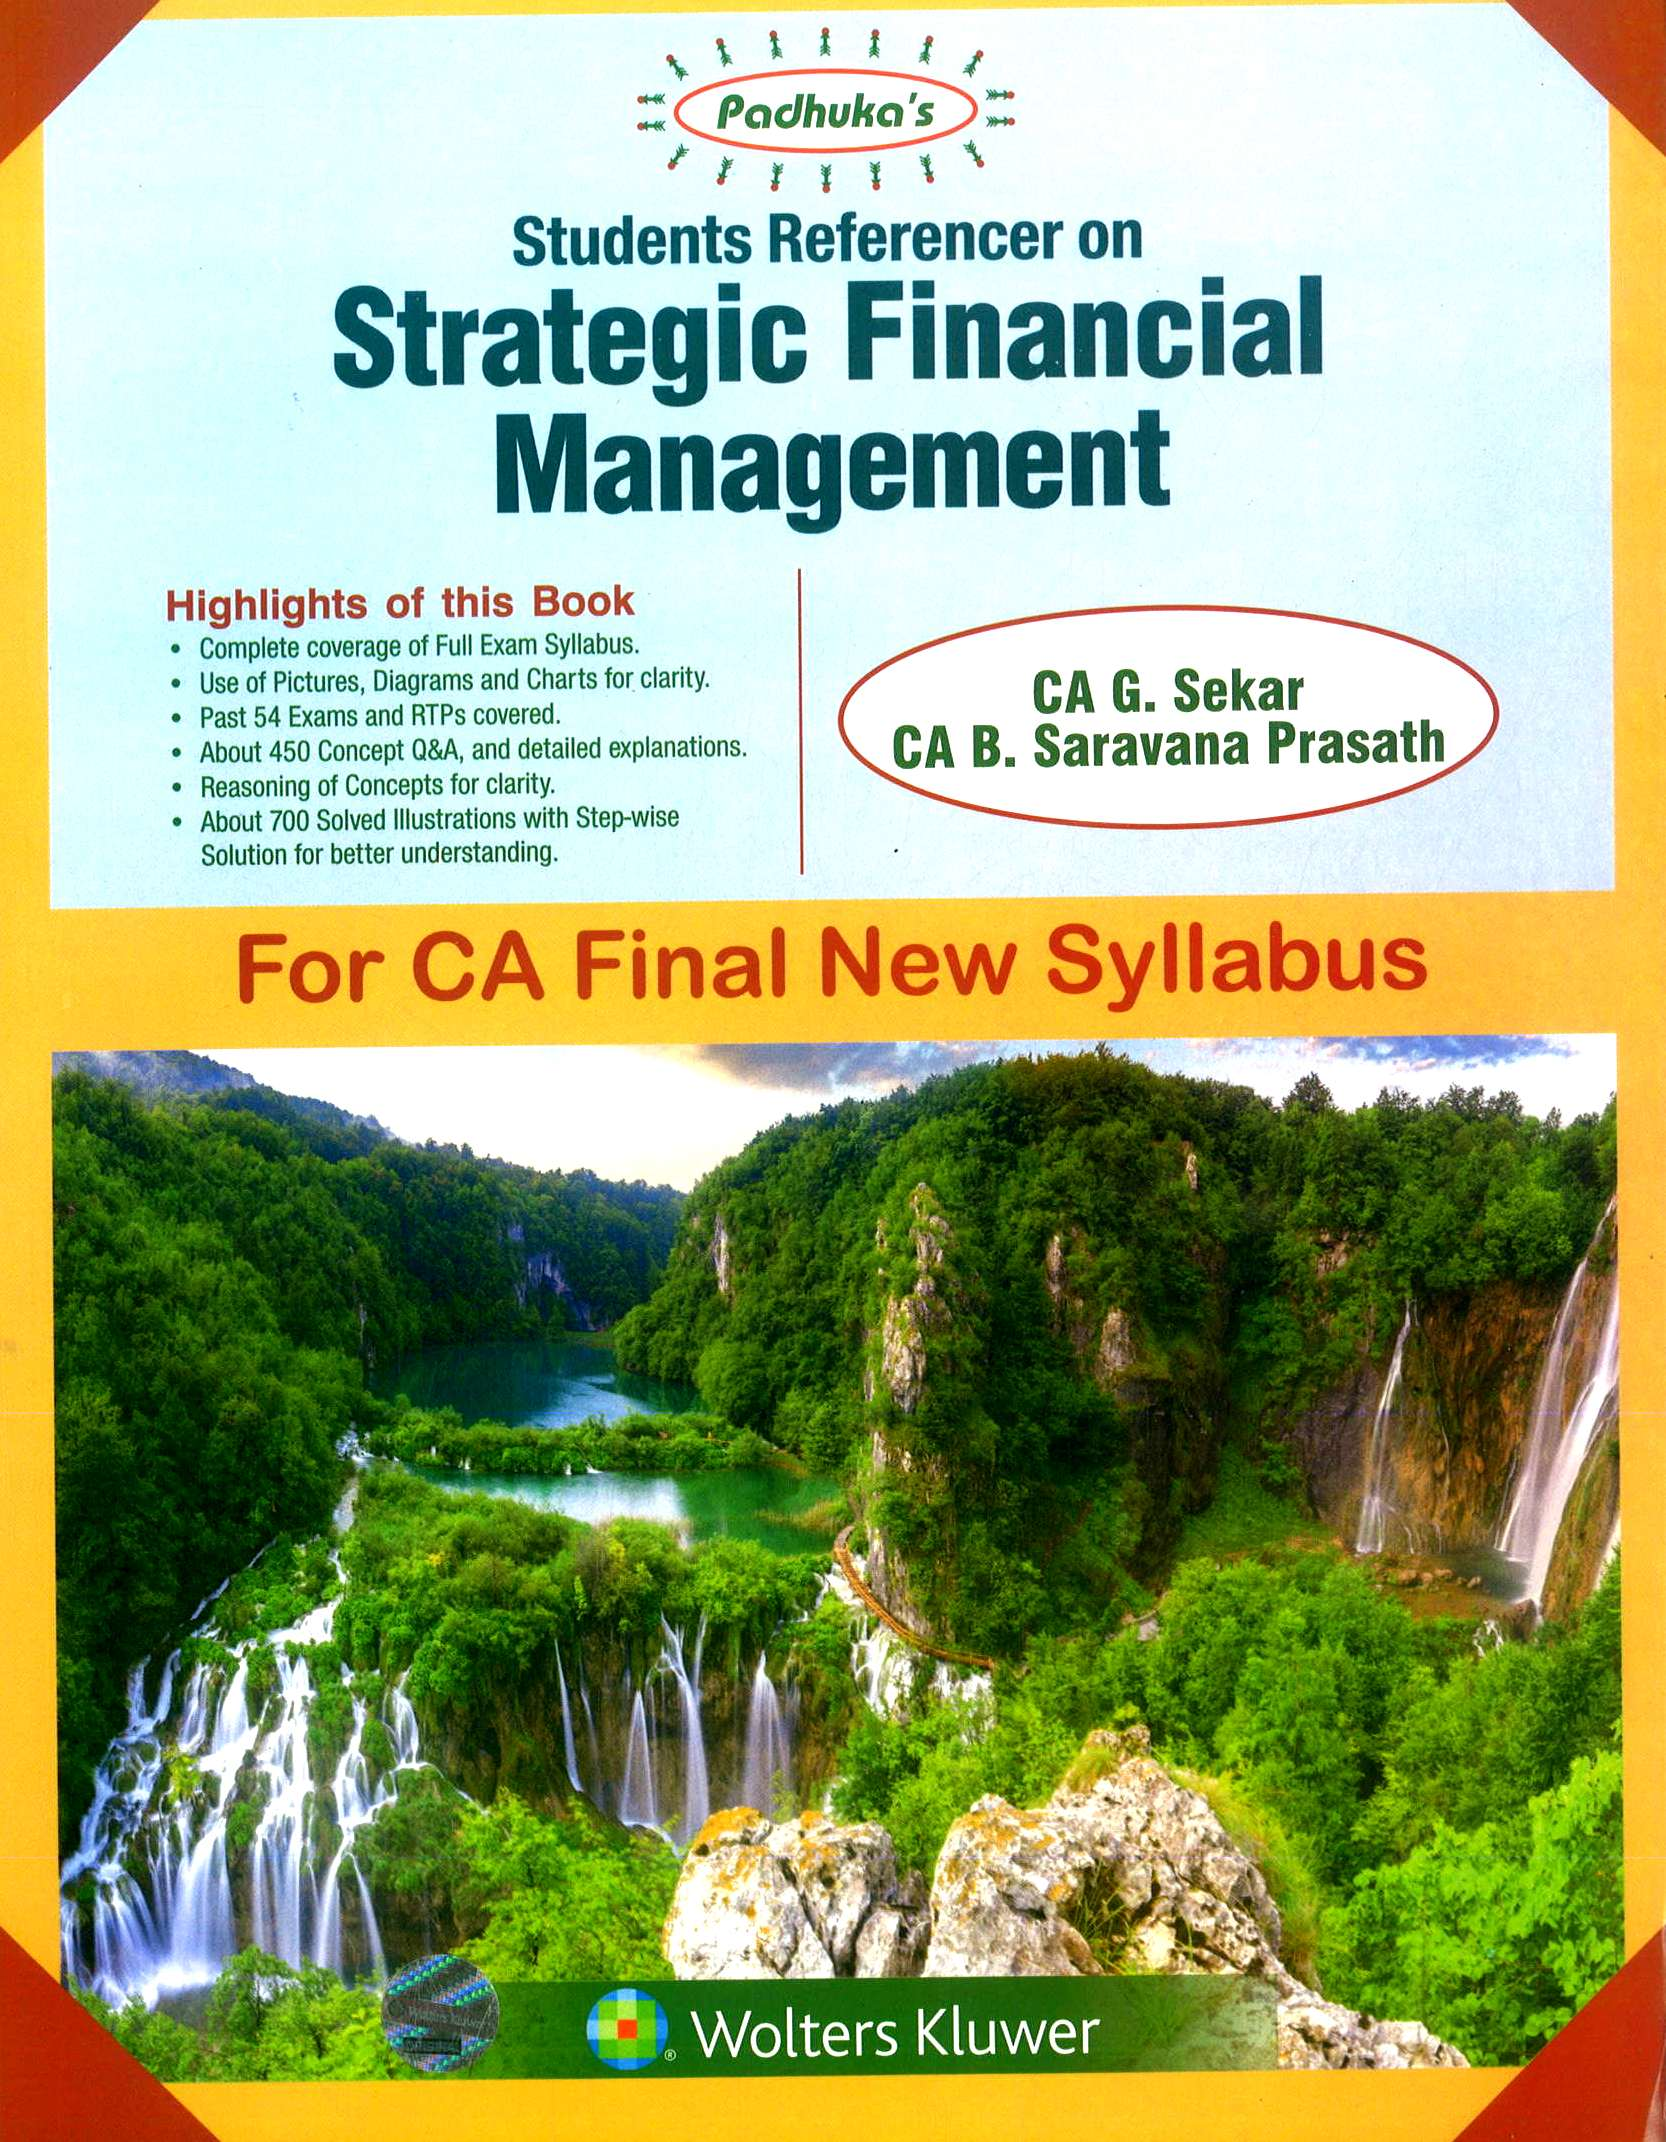 CCH Padhuka Students Referencer on Strategic Financial Management For CA Final New Syllabus CA Final by G Sekar , B Sarvana Prasath Applicable for Nov 2018 Exam